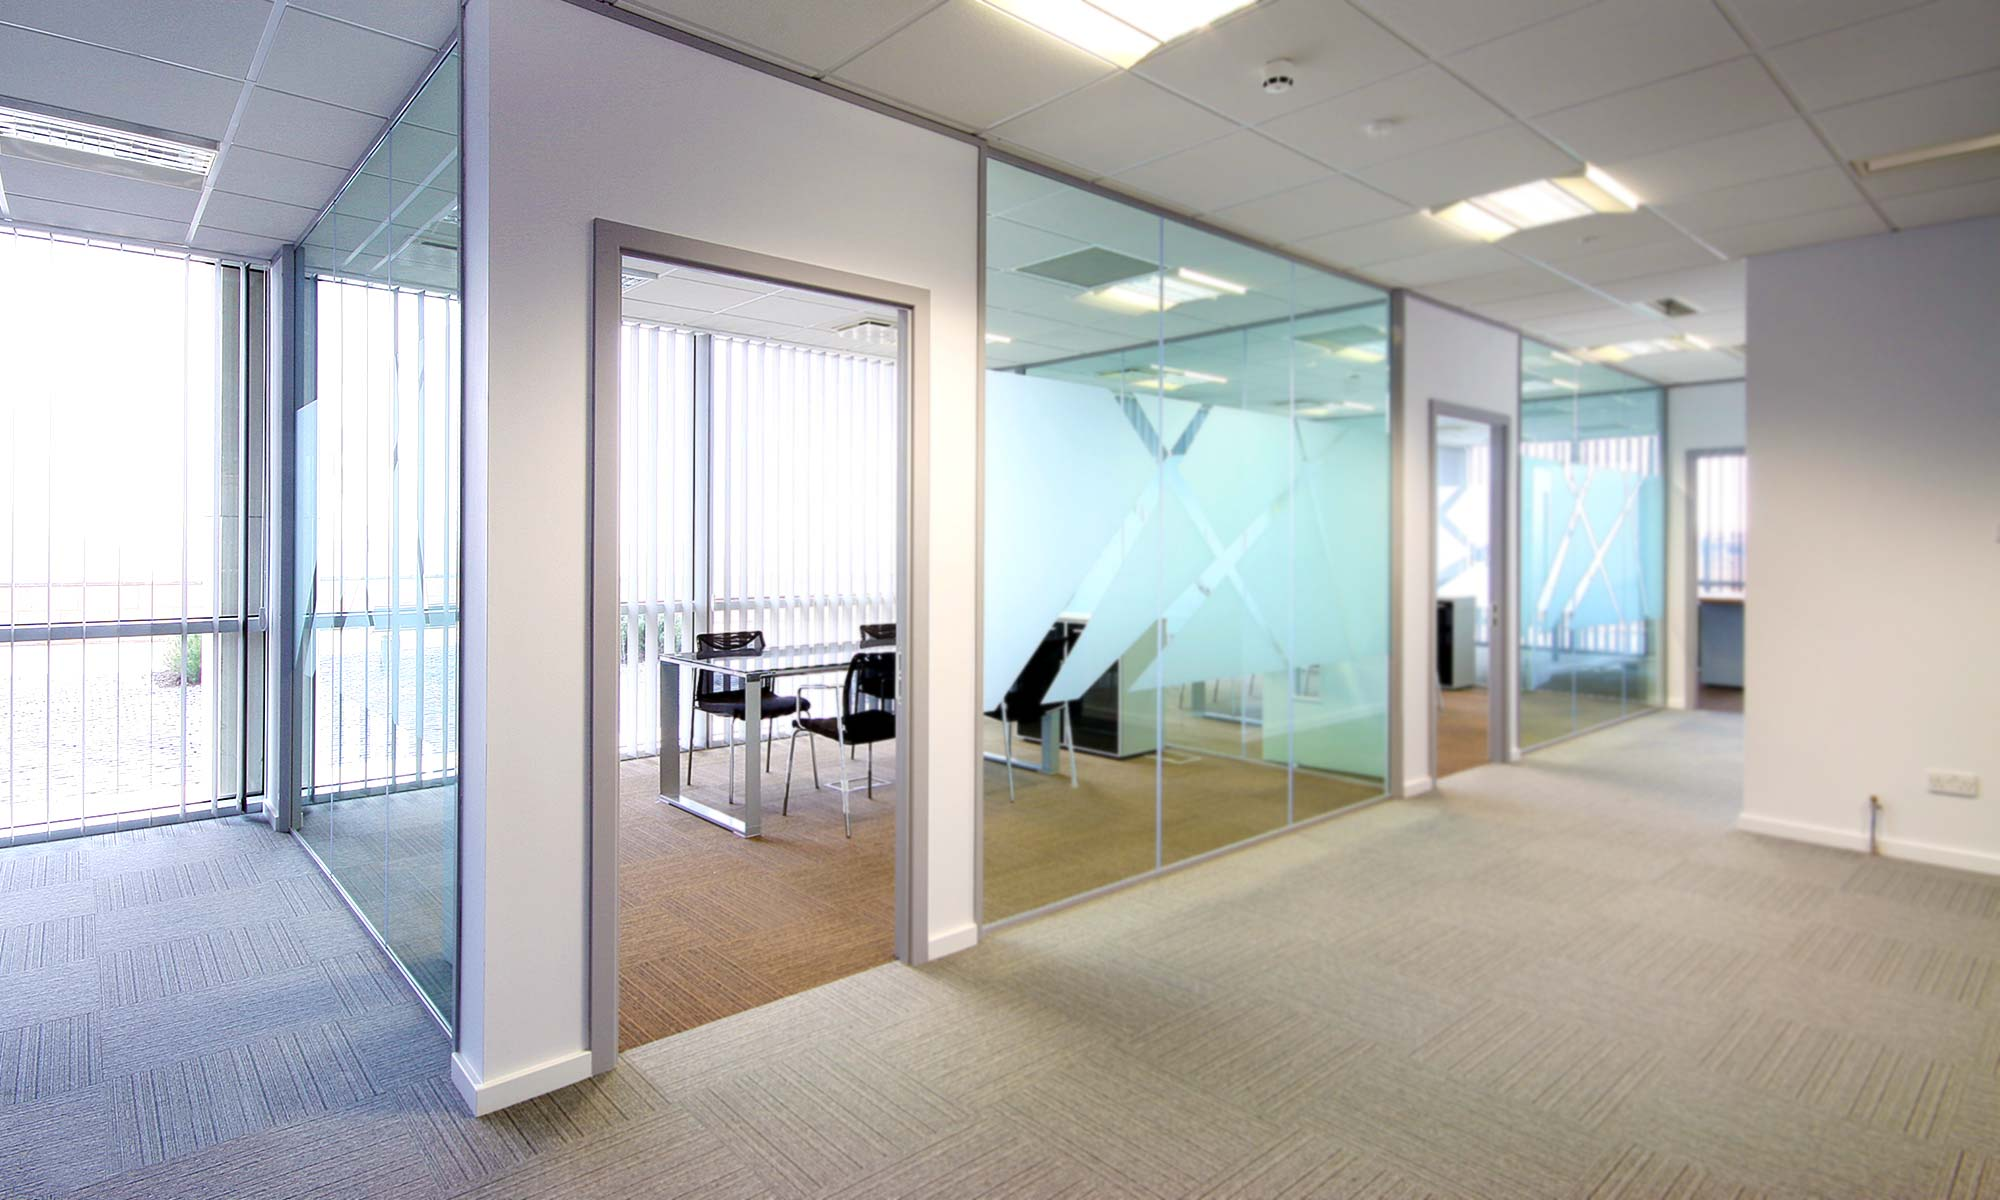 Our Contemproary Interior Design Will Improve Your Office Greatly